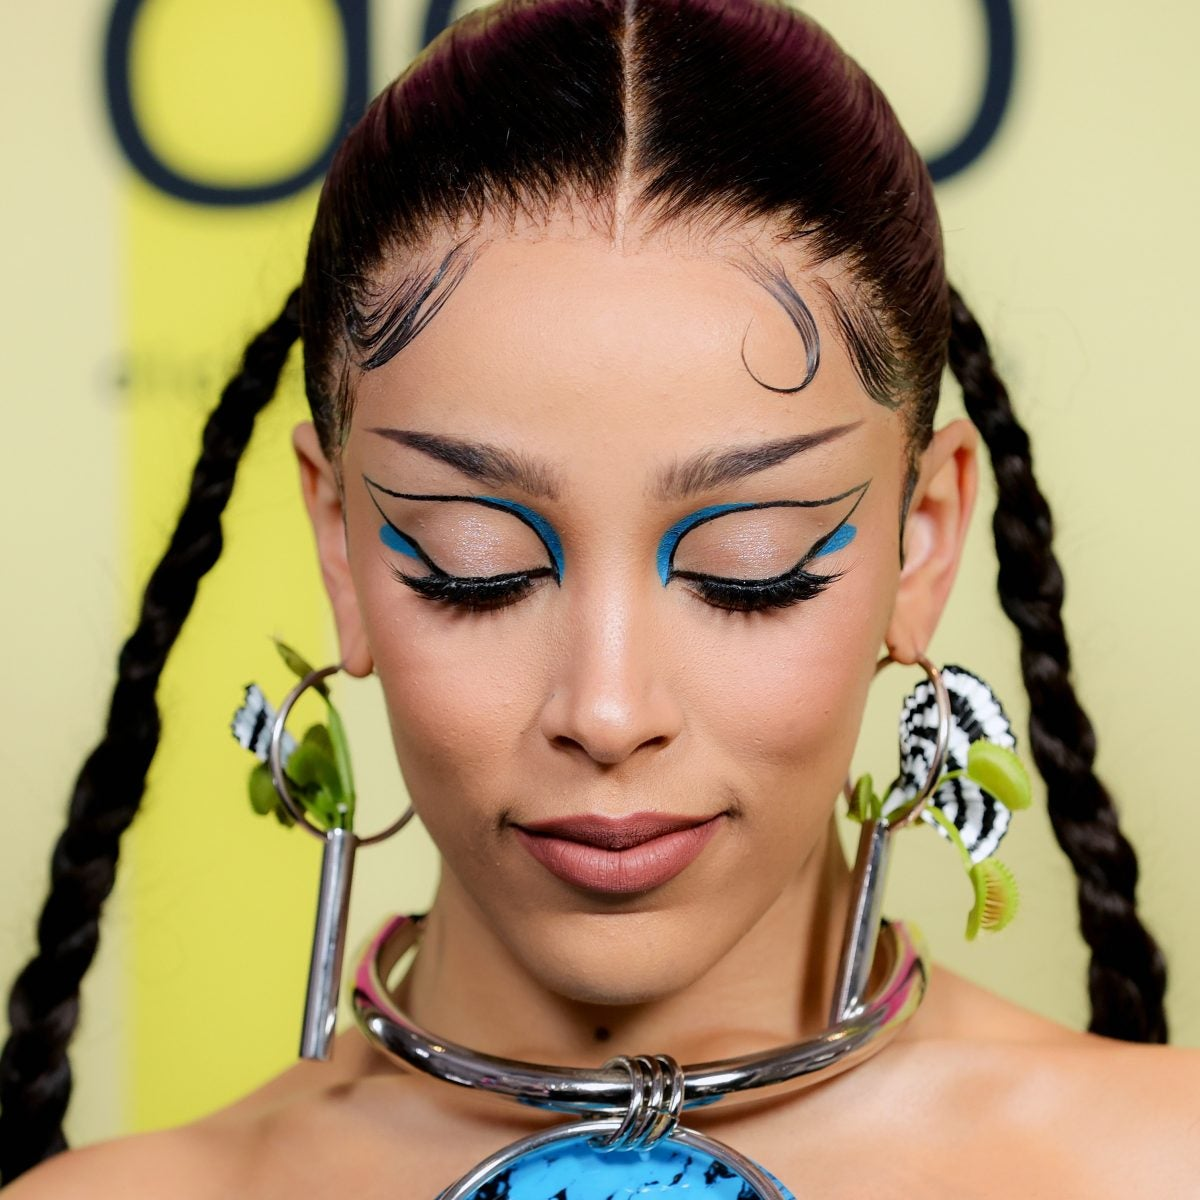 EXCLUSIVE: How Doja Cat's Hairstylist Created Not One, But Two Ornate Braid Looks For The 2021 Billboard Music Awards